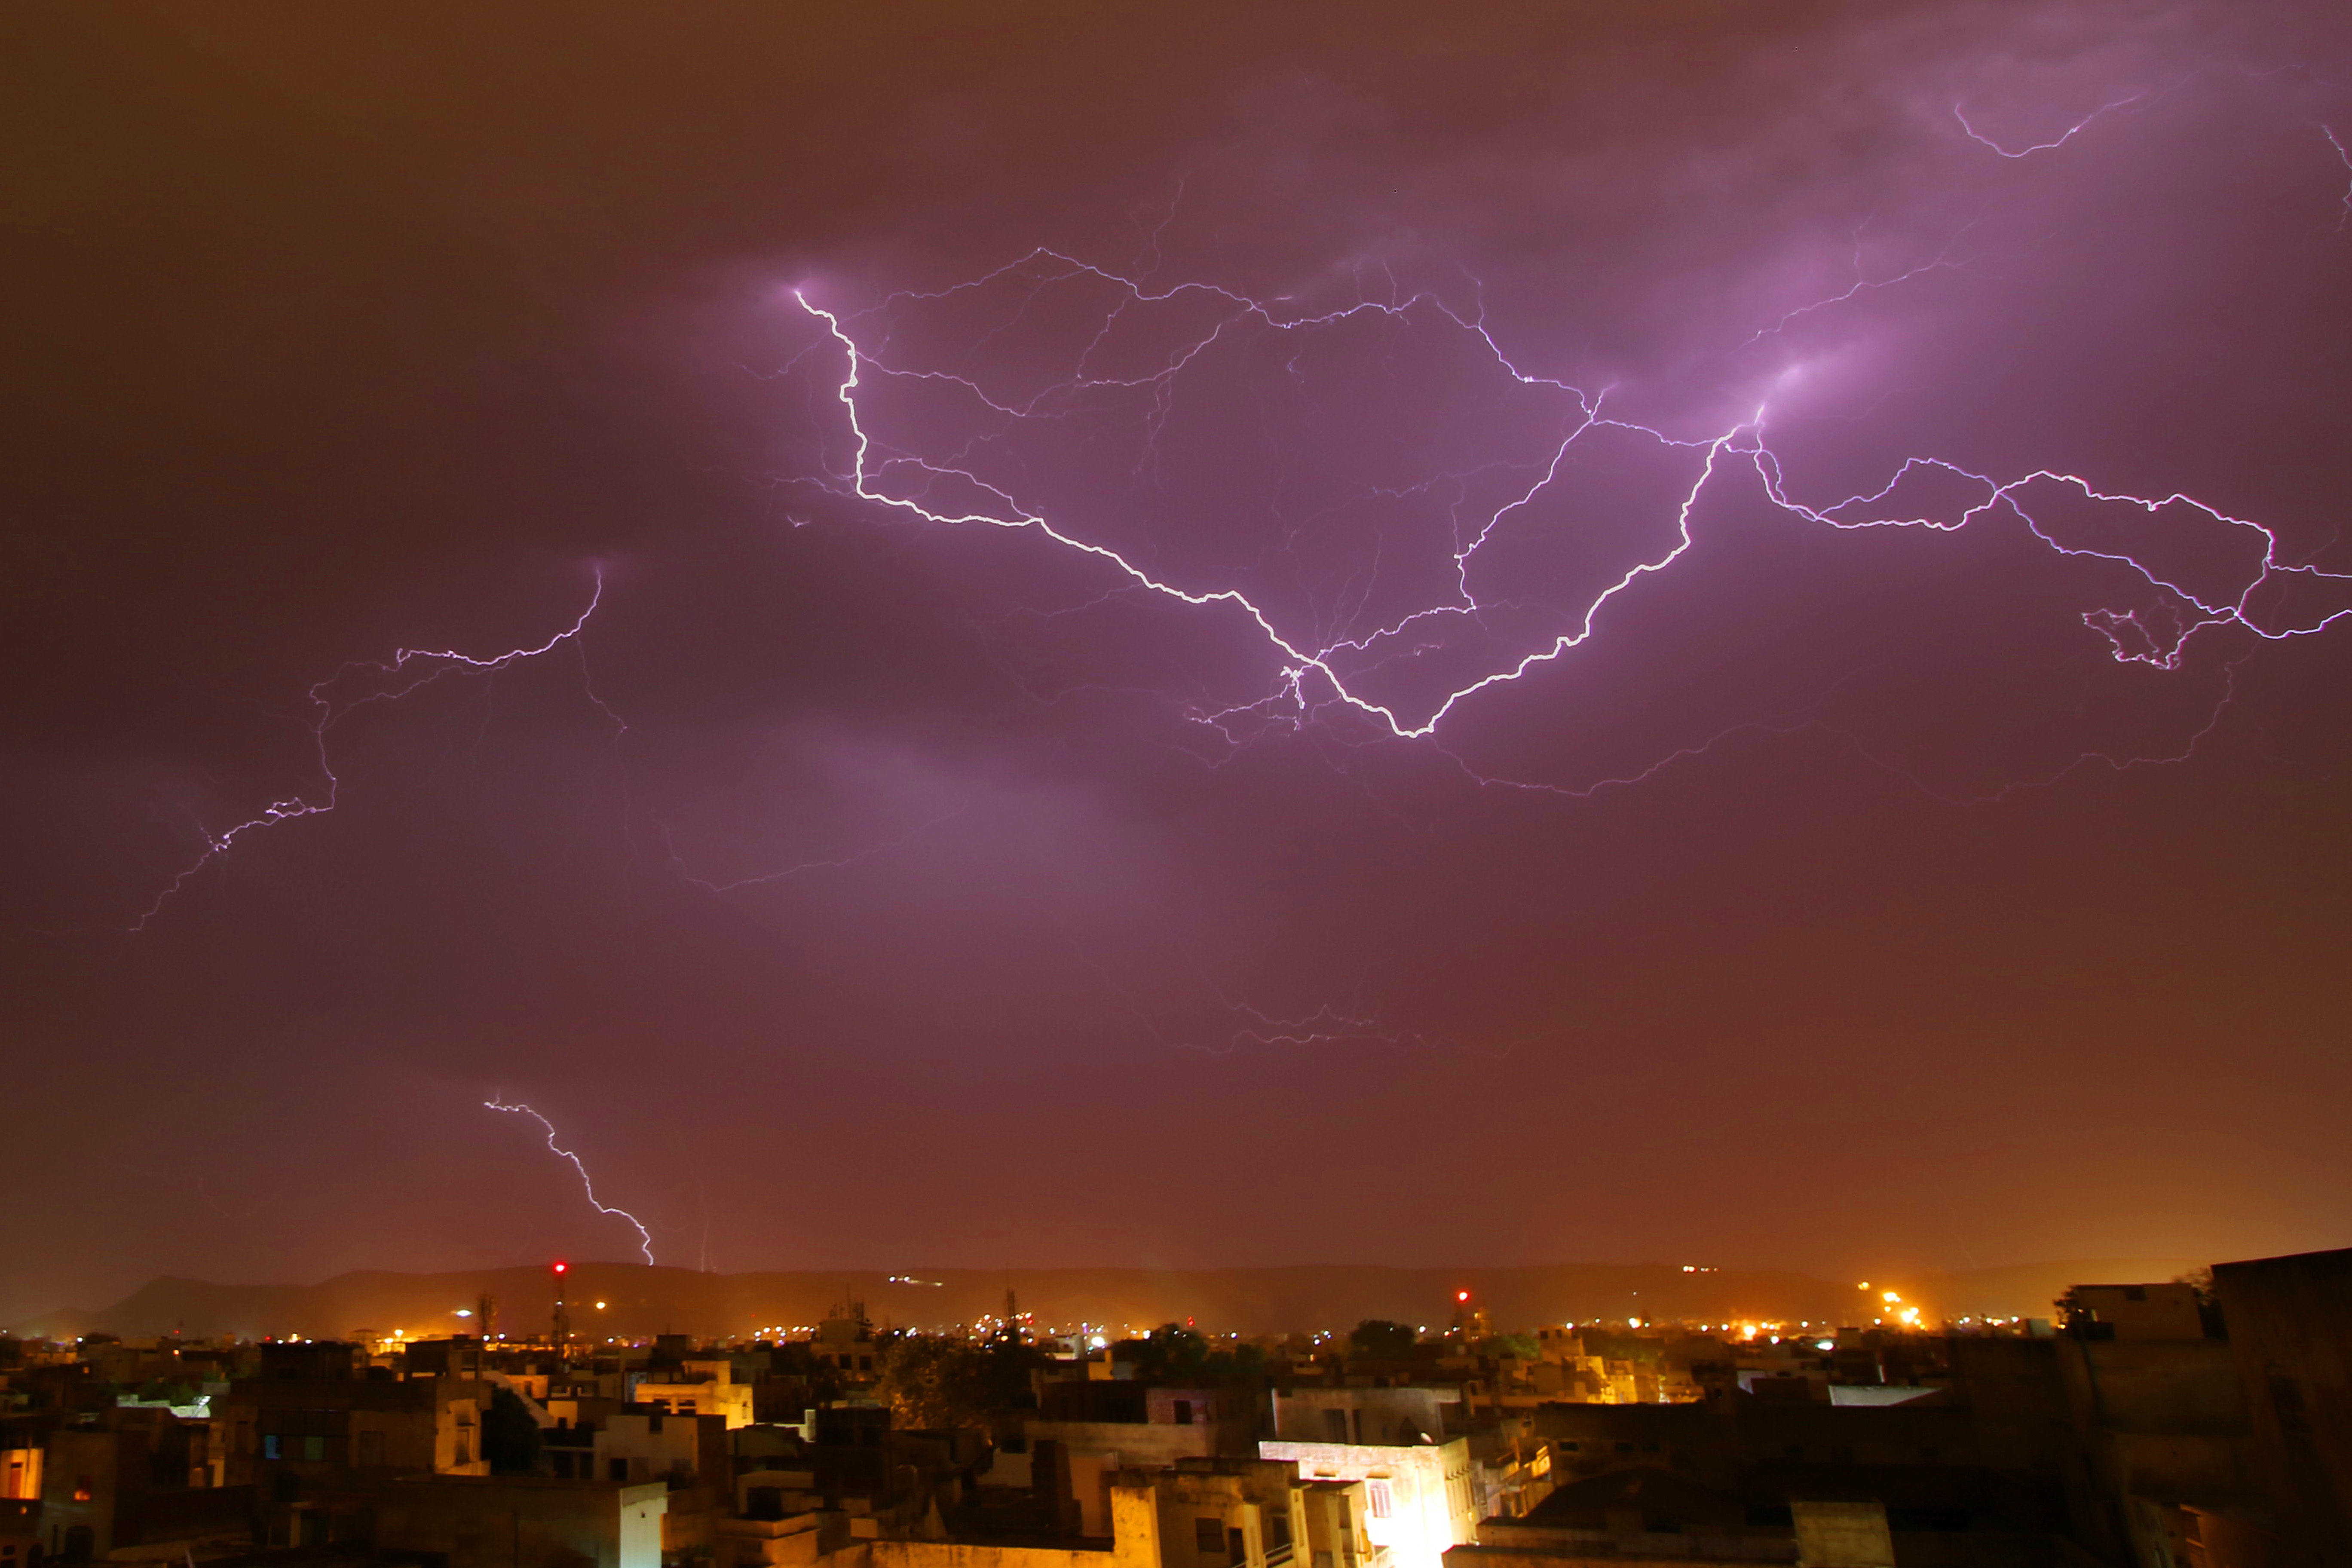 A view of thunder lightning strikes in Jaipur, India on 19 May, 2017.  An  extreme  storm in the state of Andhra Pradesh on April 24, 2018 included over 36,000 lightning strikes.